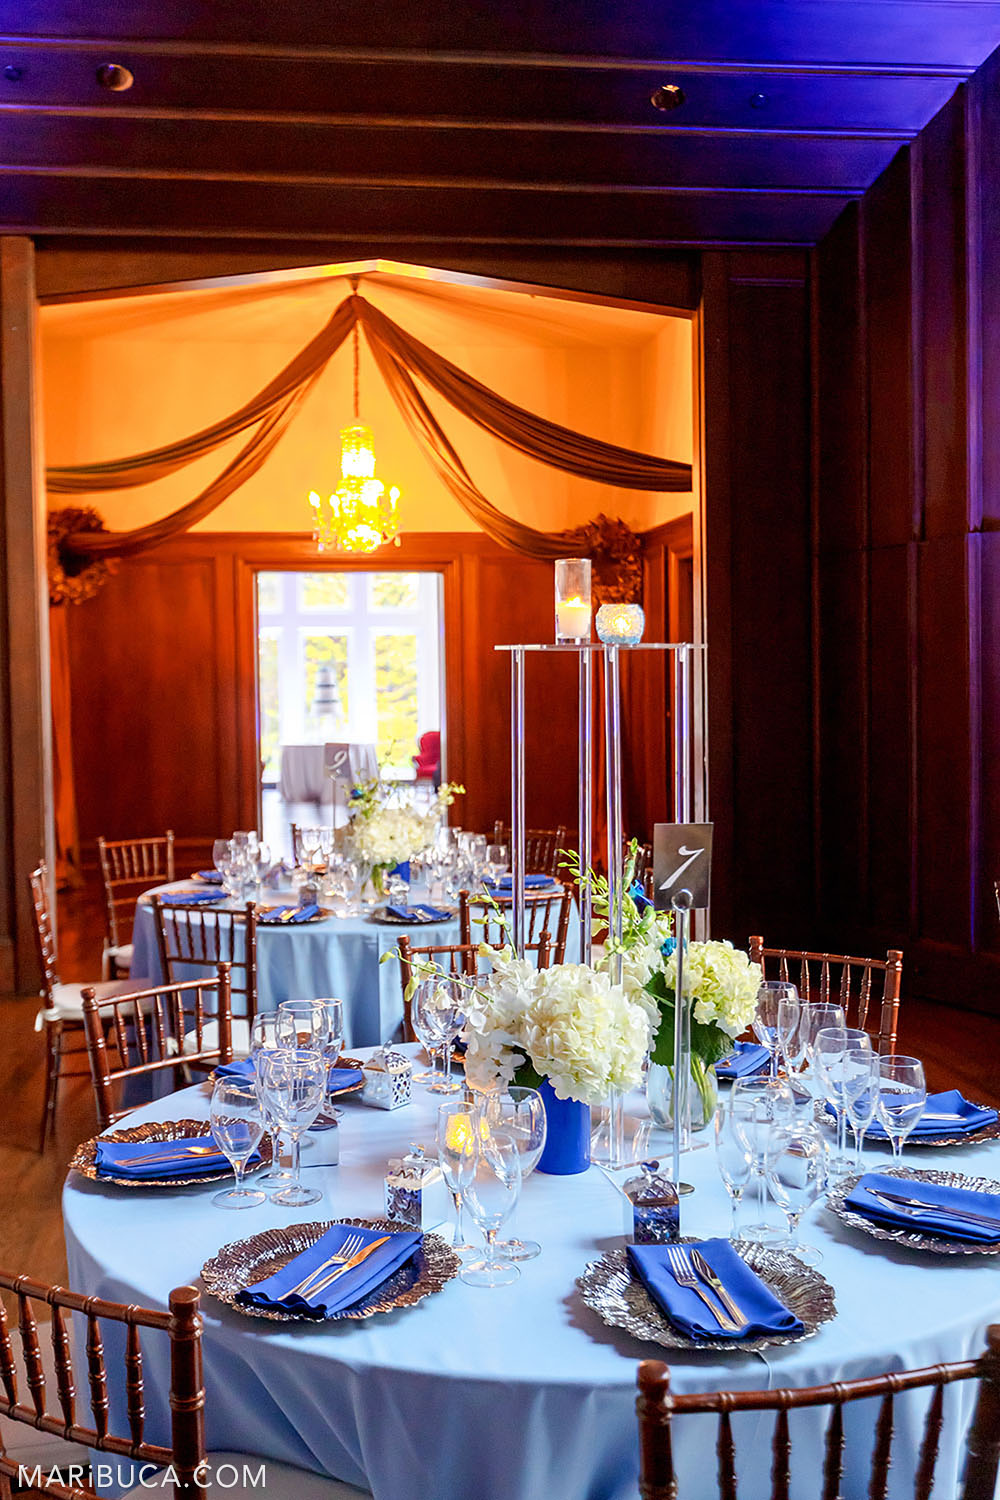 Wedding reception with rounded light blue table, navy blue cloth napkins, white bouquets of flowers and orange background in the Great Hall, Kohl Mansion, Burlingame